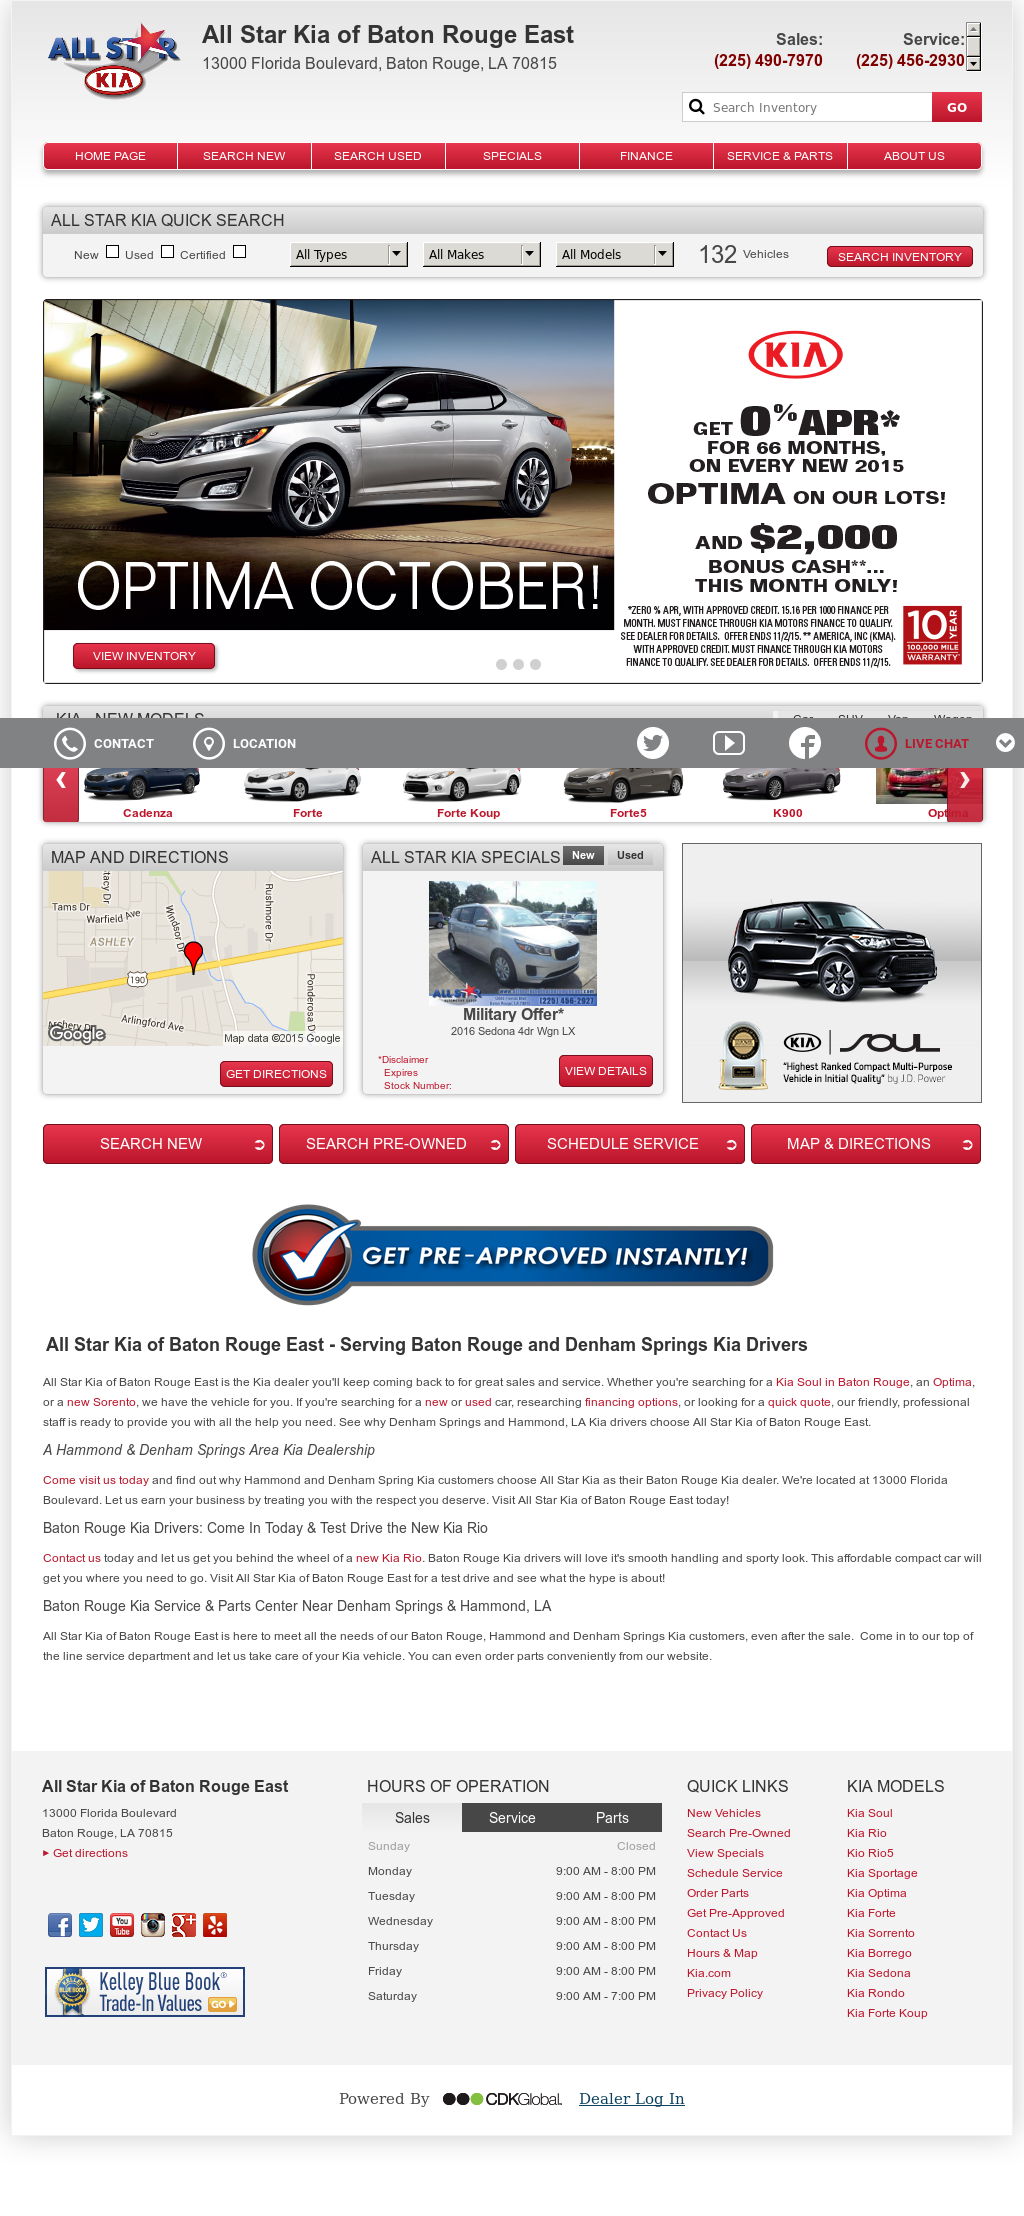 carfinder lot red online rouge baton auctions en of copart in title auto on sale kia certificate right la view sportage